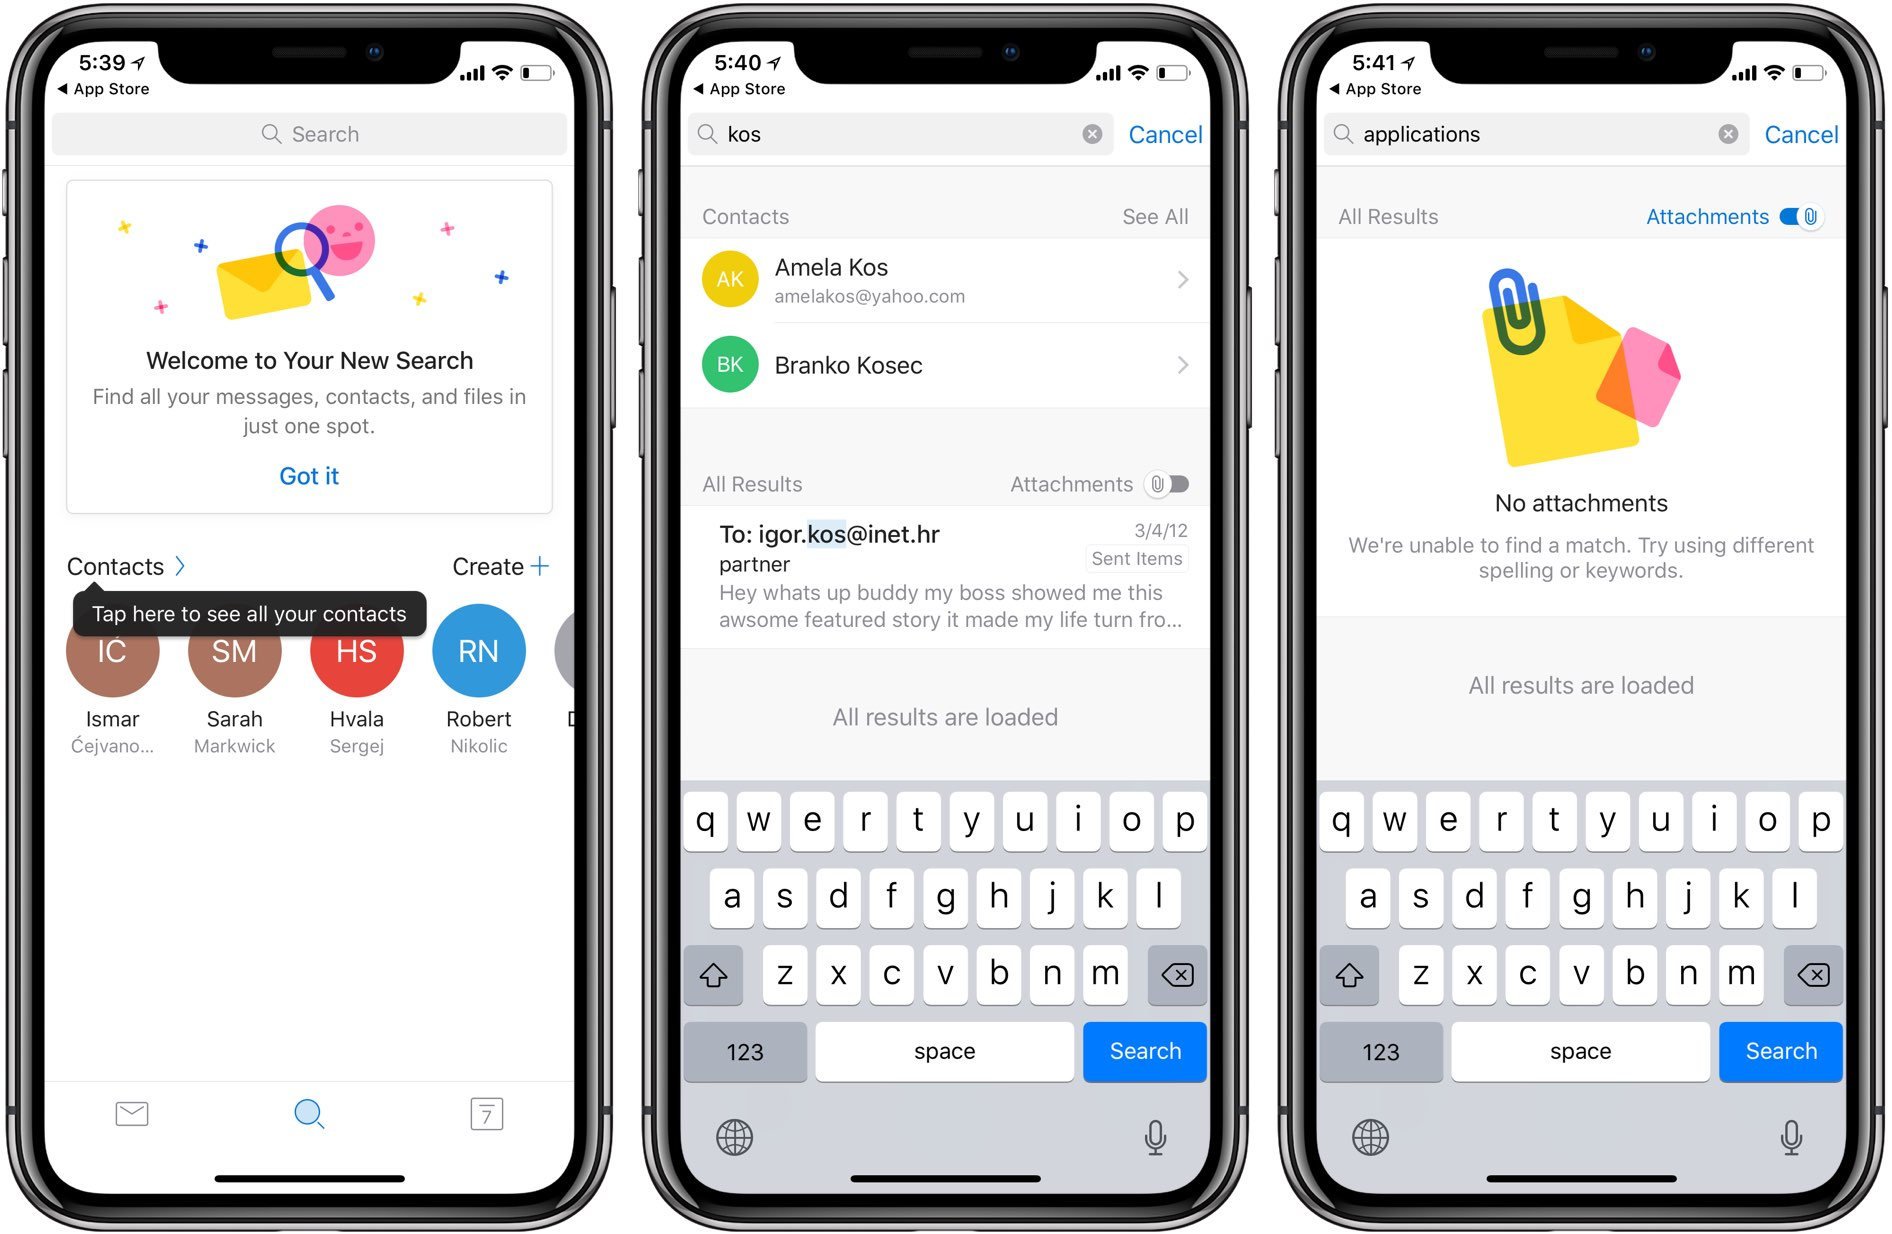 Outlook For IOS Adds New Search Features And Filters